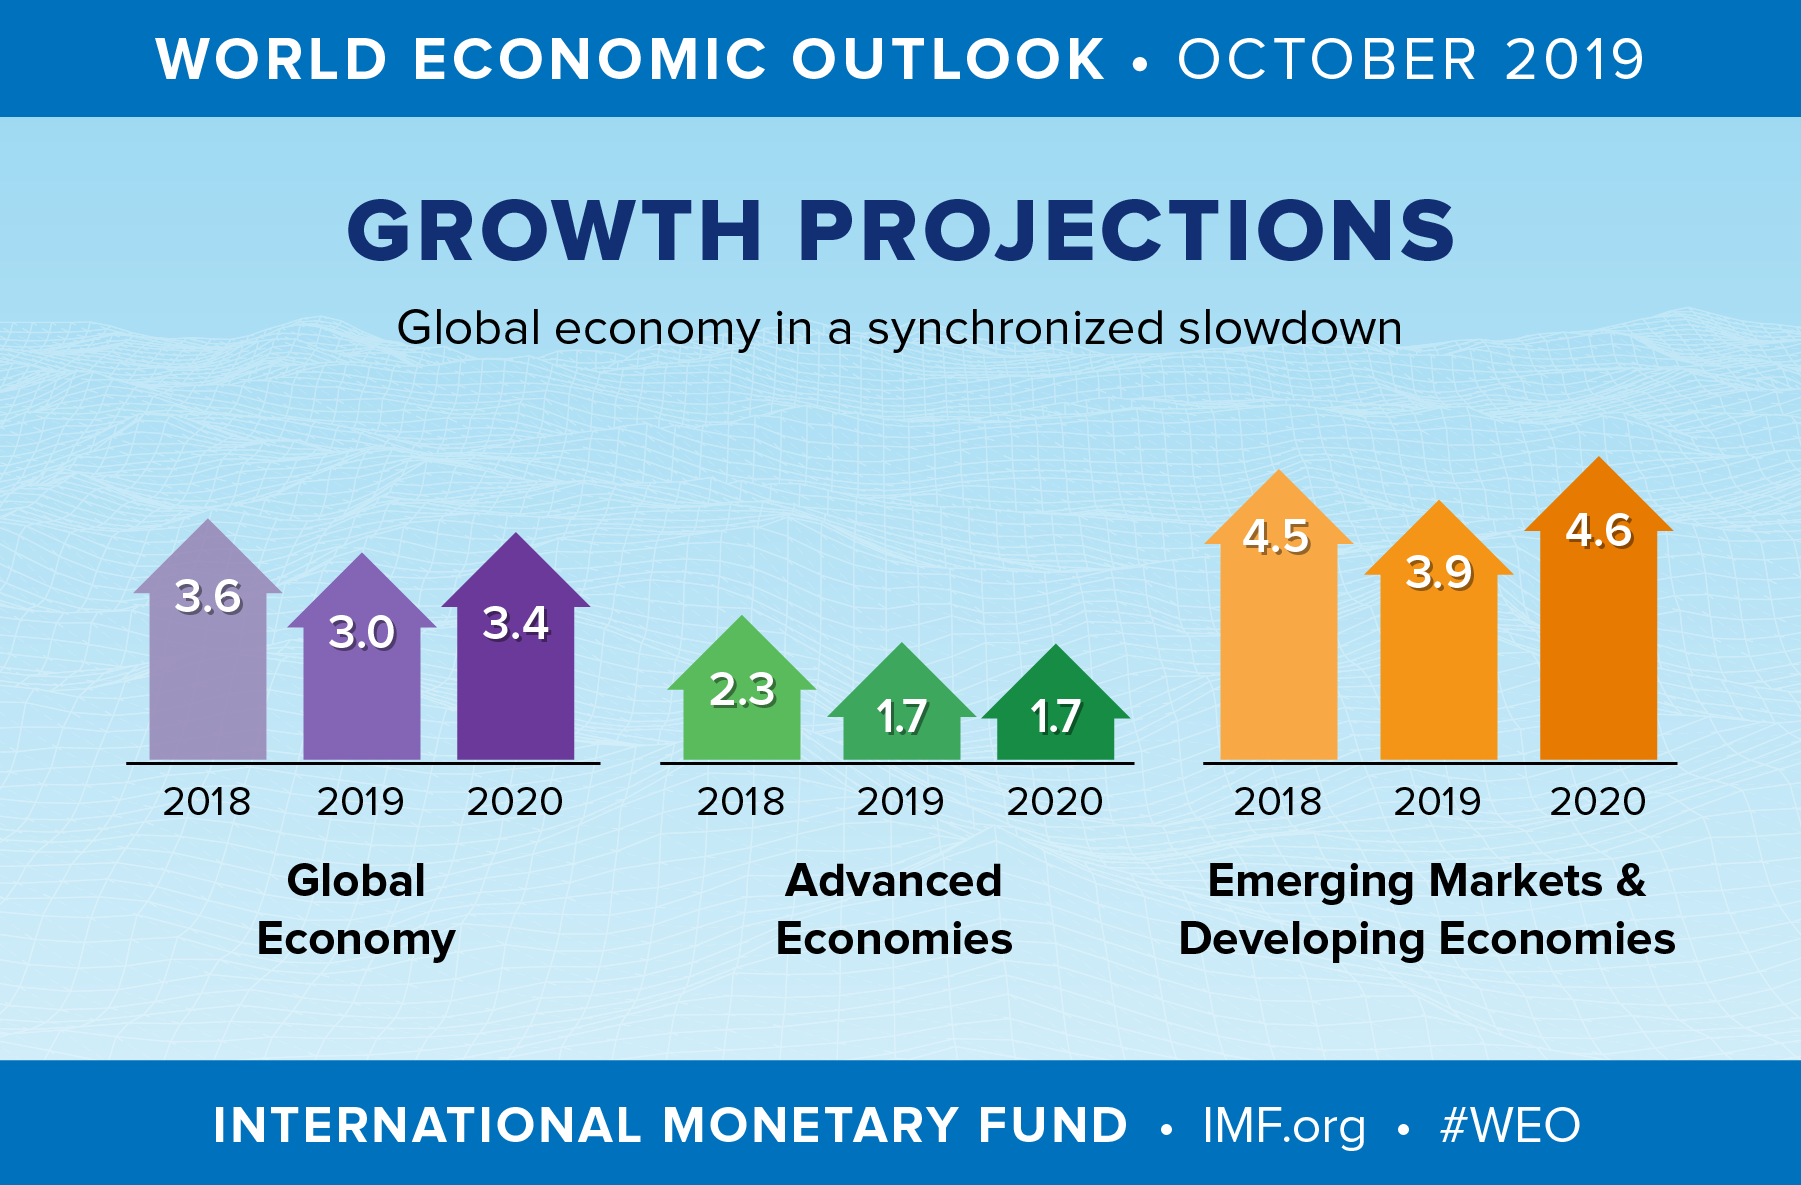 The IMF lowered its economic growth forecast for 2020.